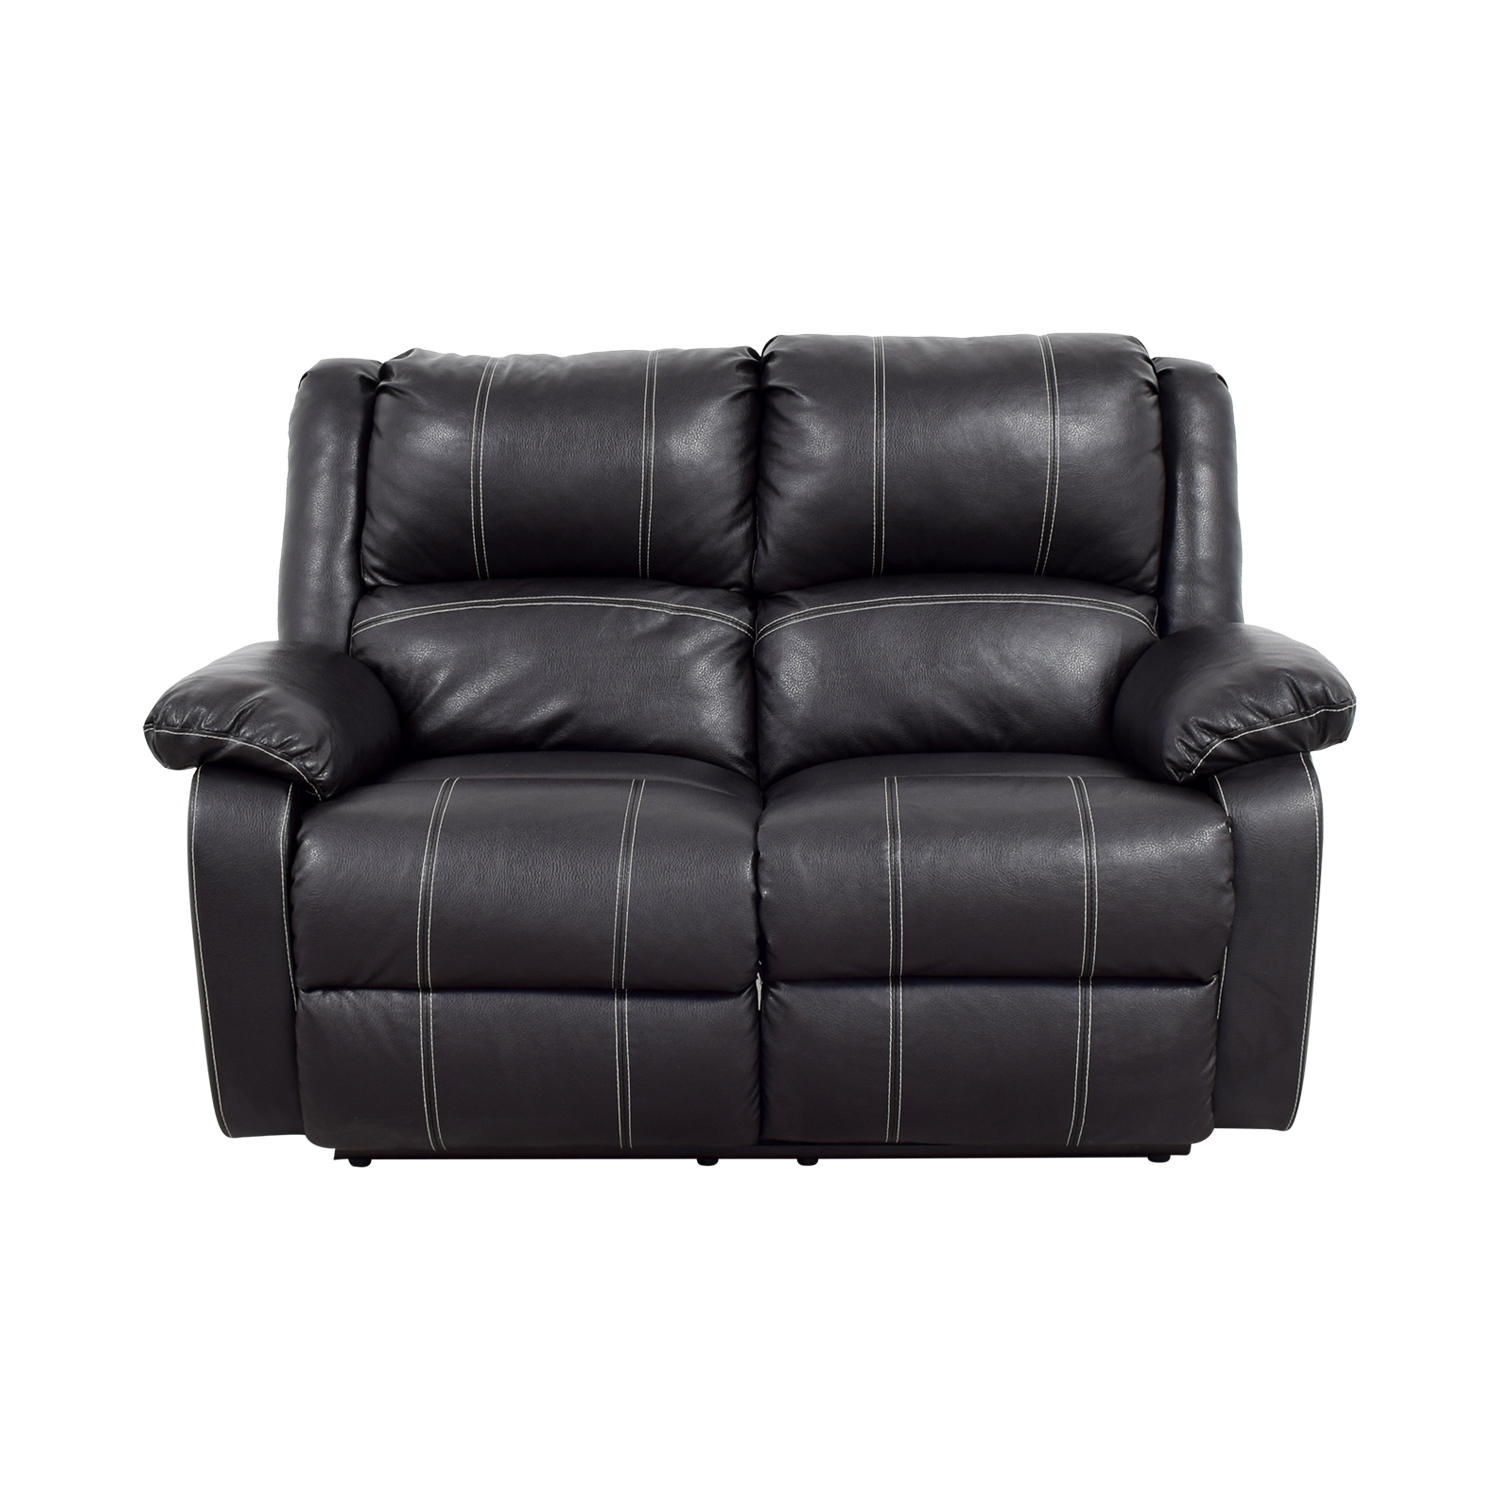 Acme Acme Black Leather Reclining Loveseat second hand